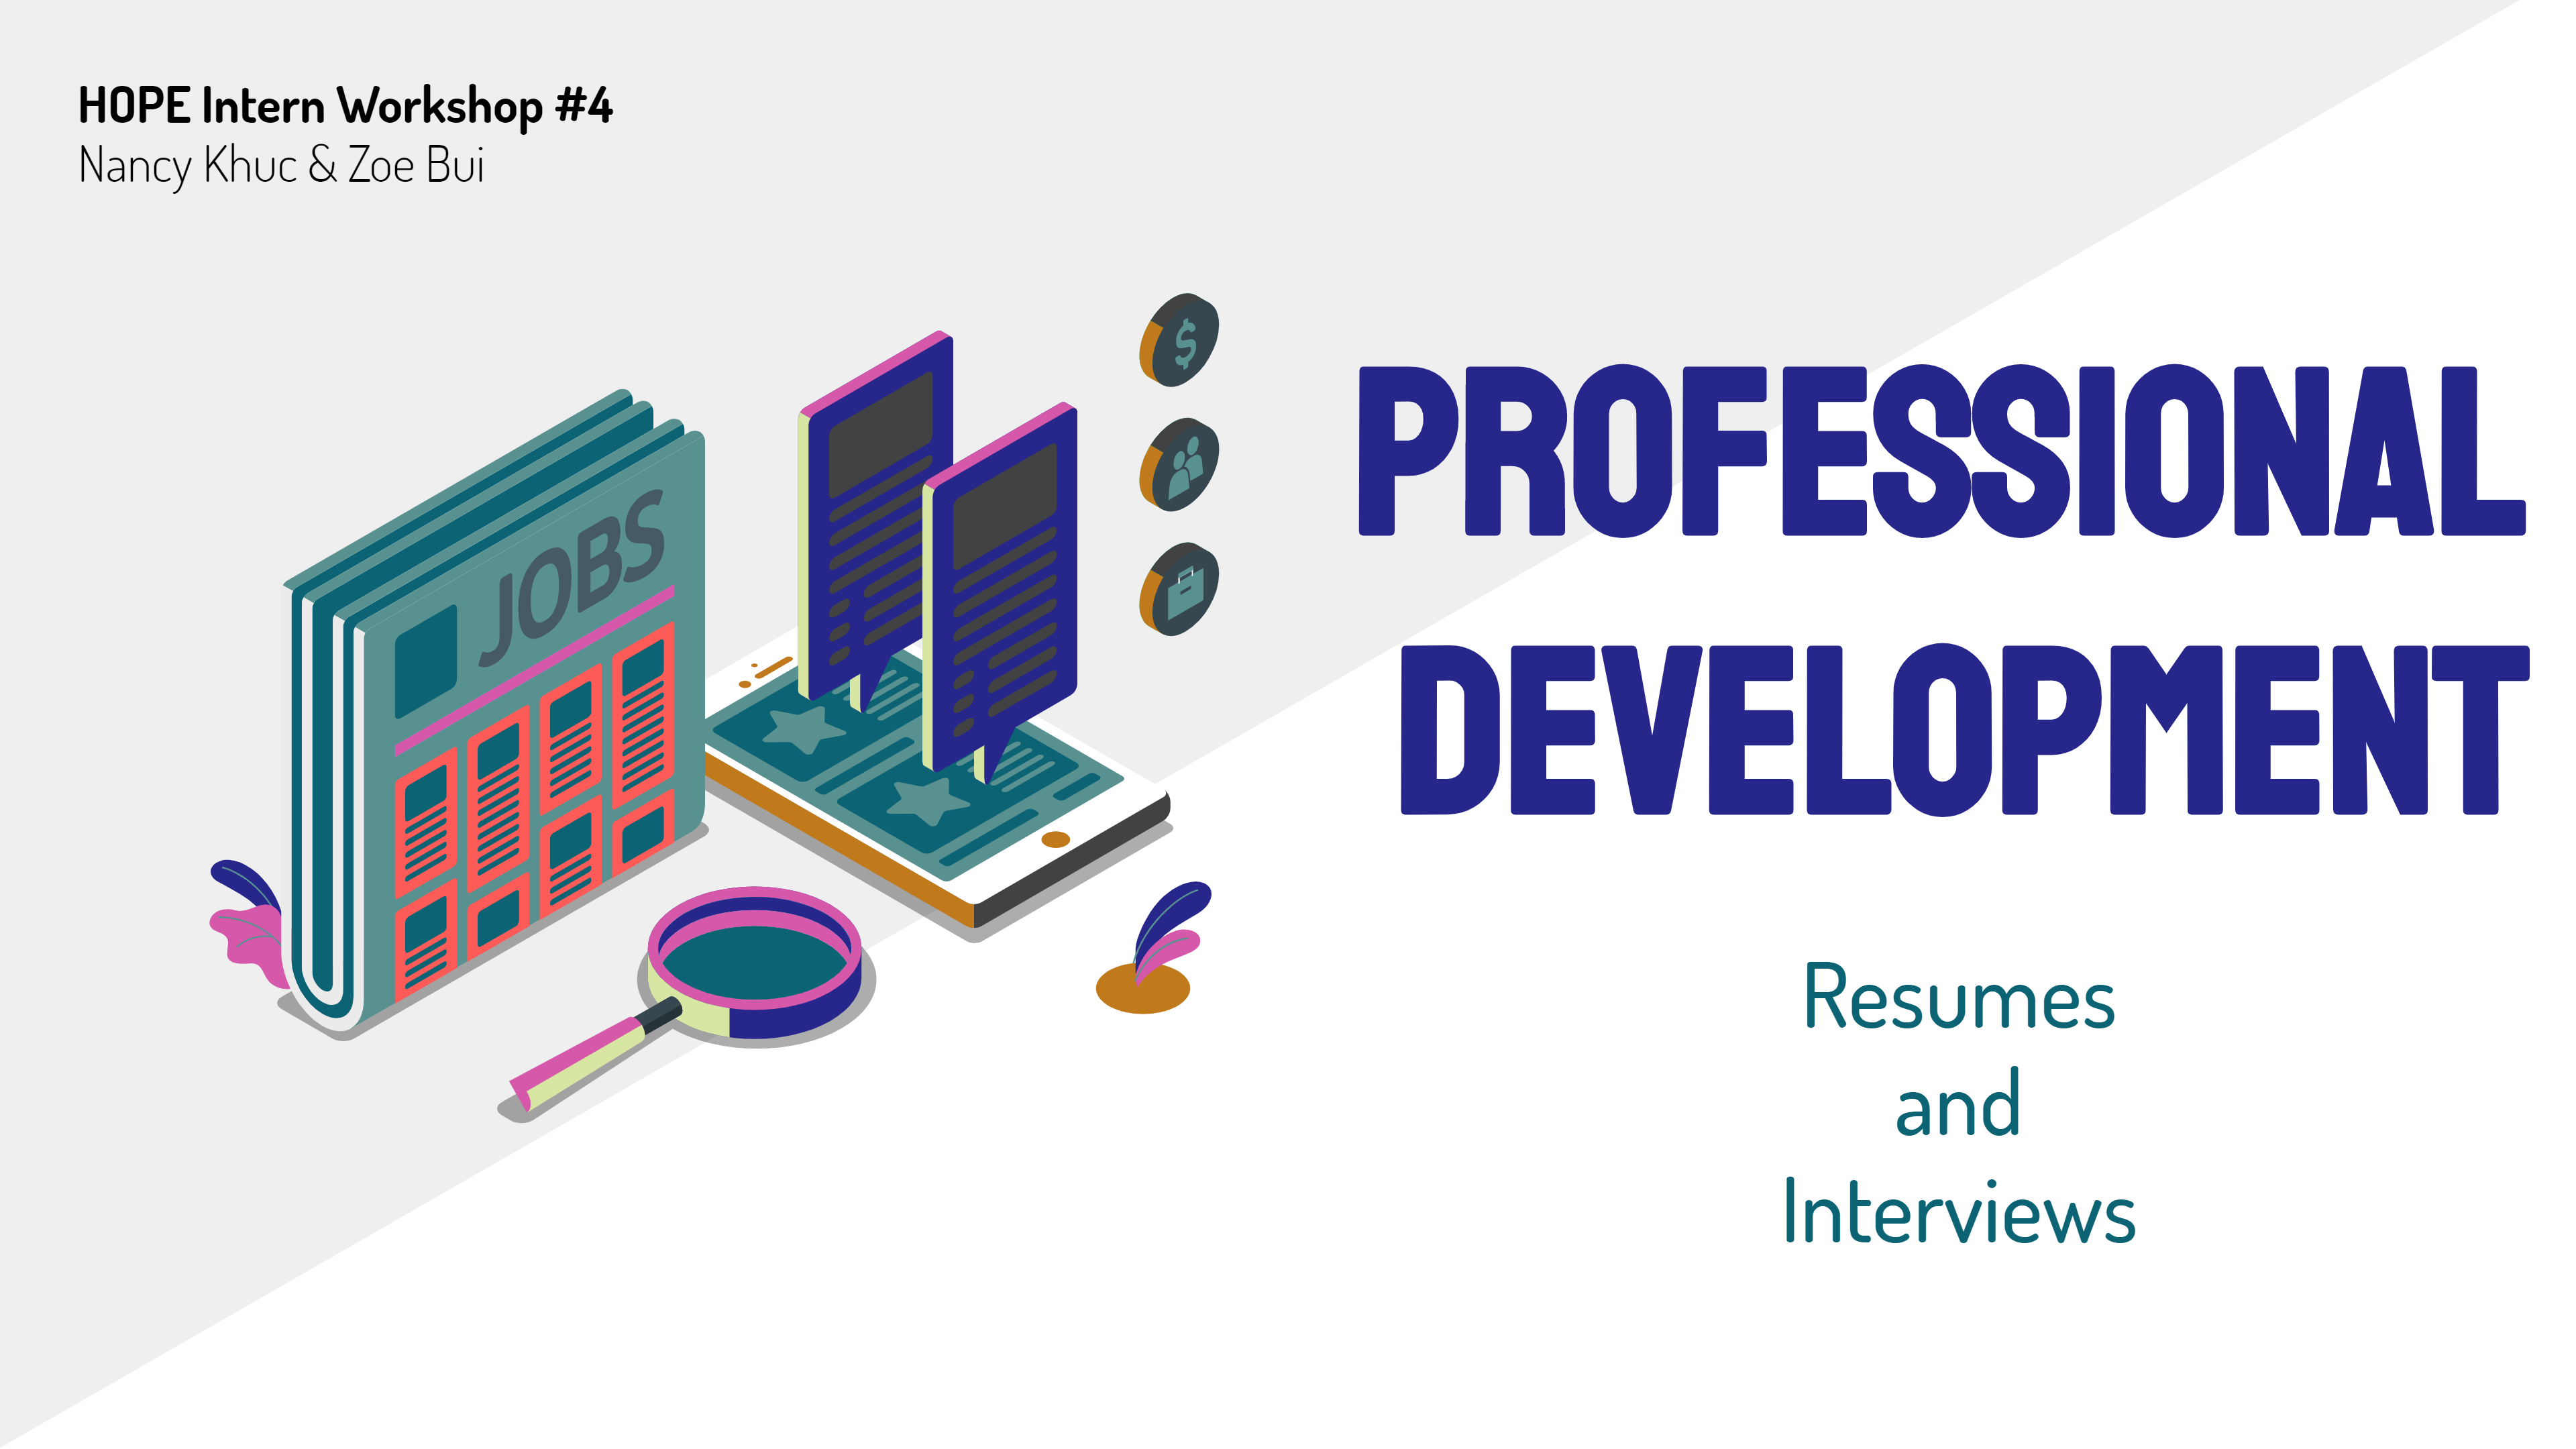 Want to learn how to build a resume or prepare for an interview? Explore different topics and access our previous workshop slides here!